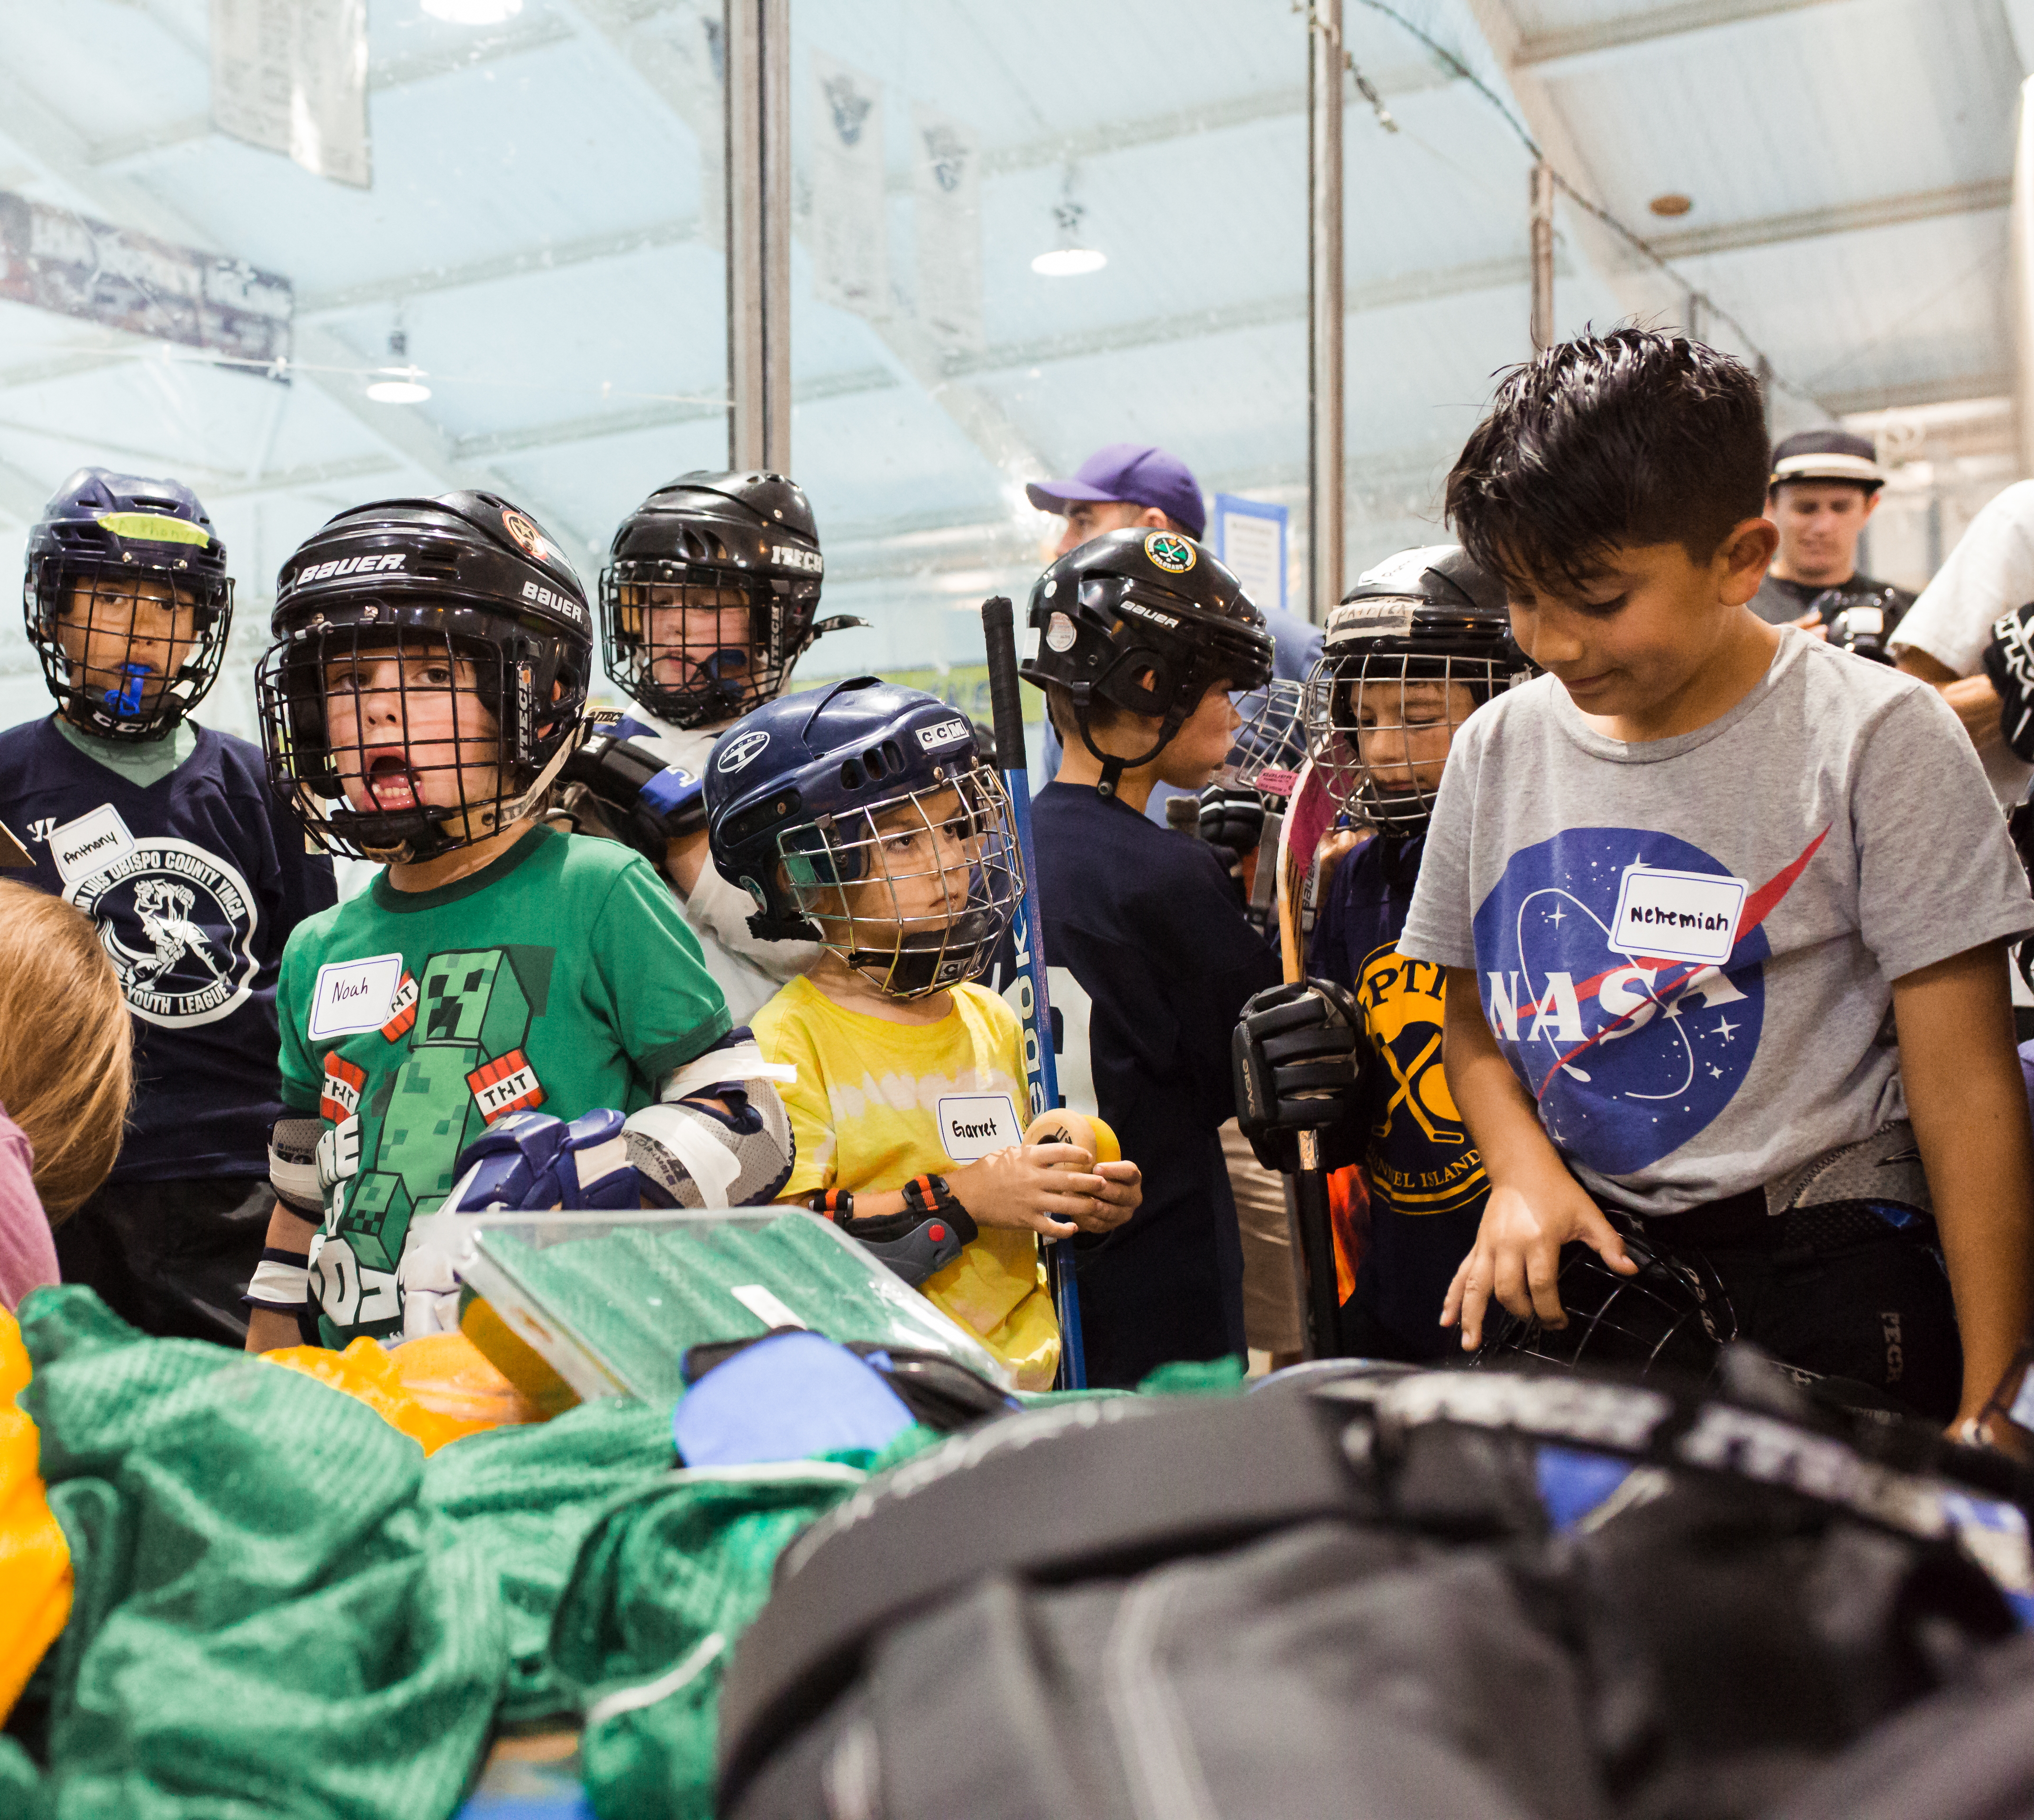 Youth Hockey Leagues Central Coast Sports Arena